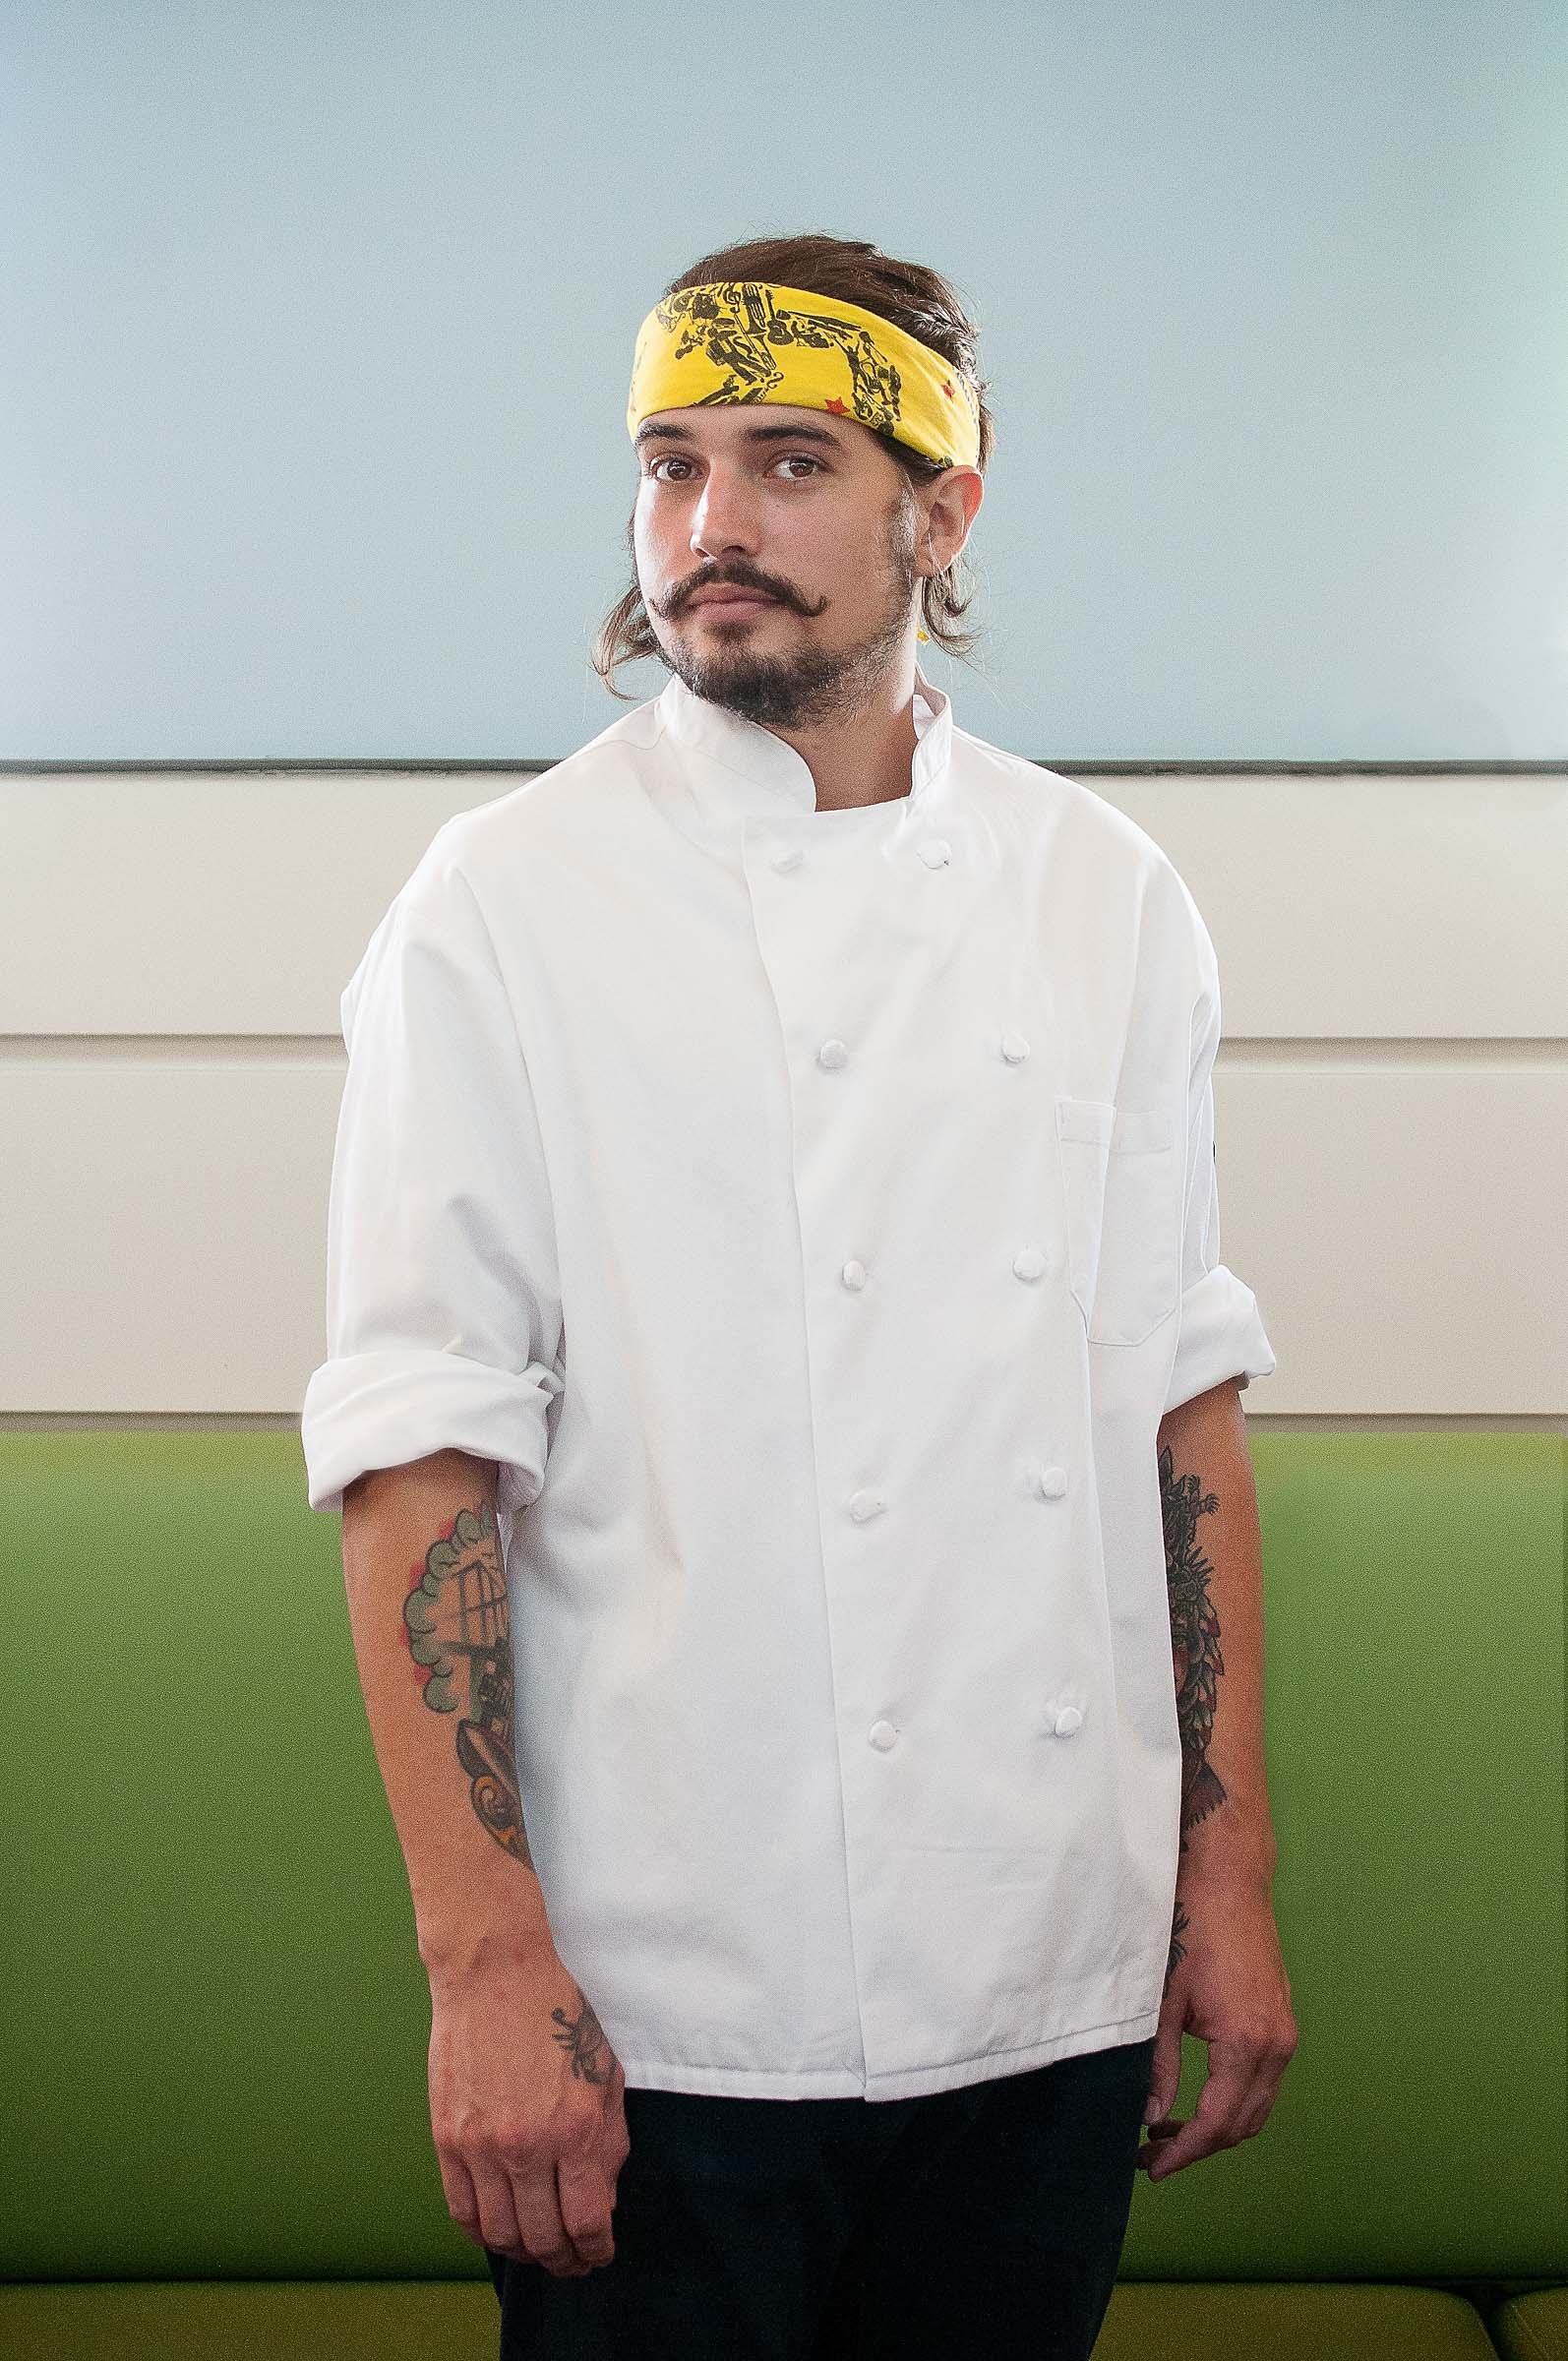 Chef Mark Ball photographed in natural light against green blue backdrop.